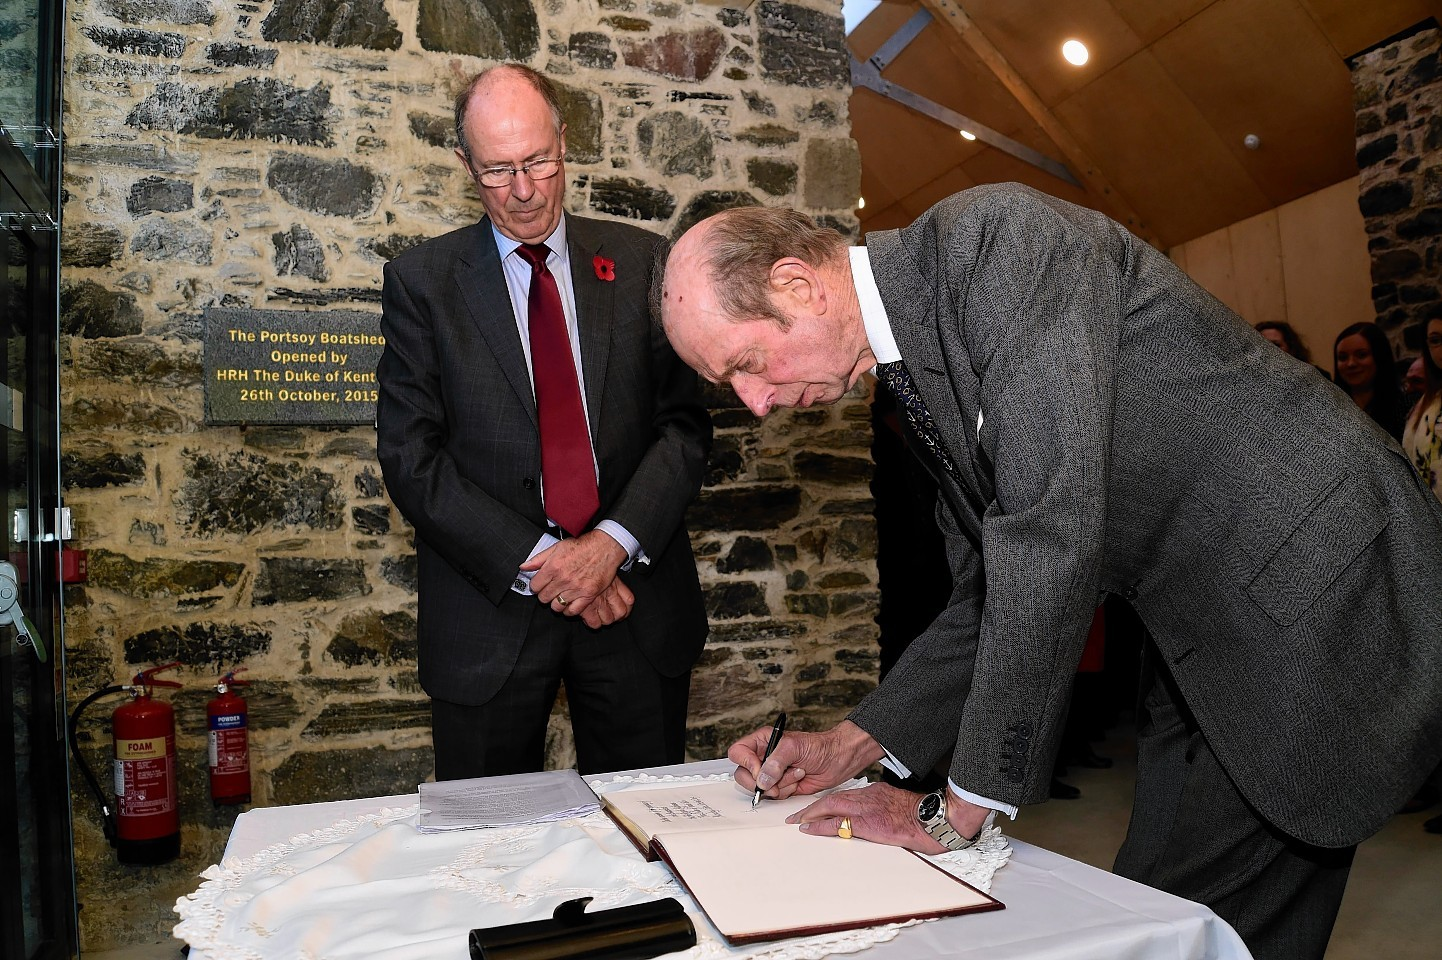 The Duke of Kent on his visit to Portsoy